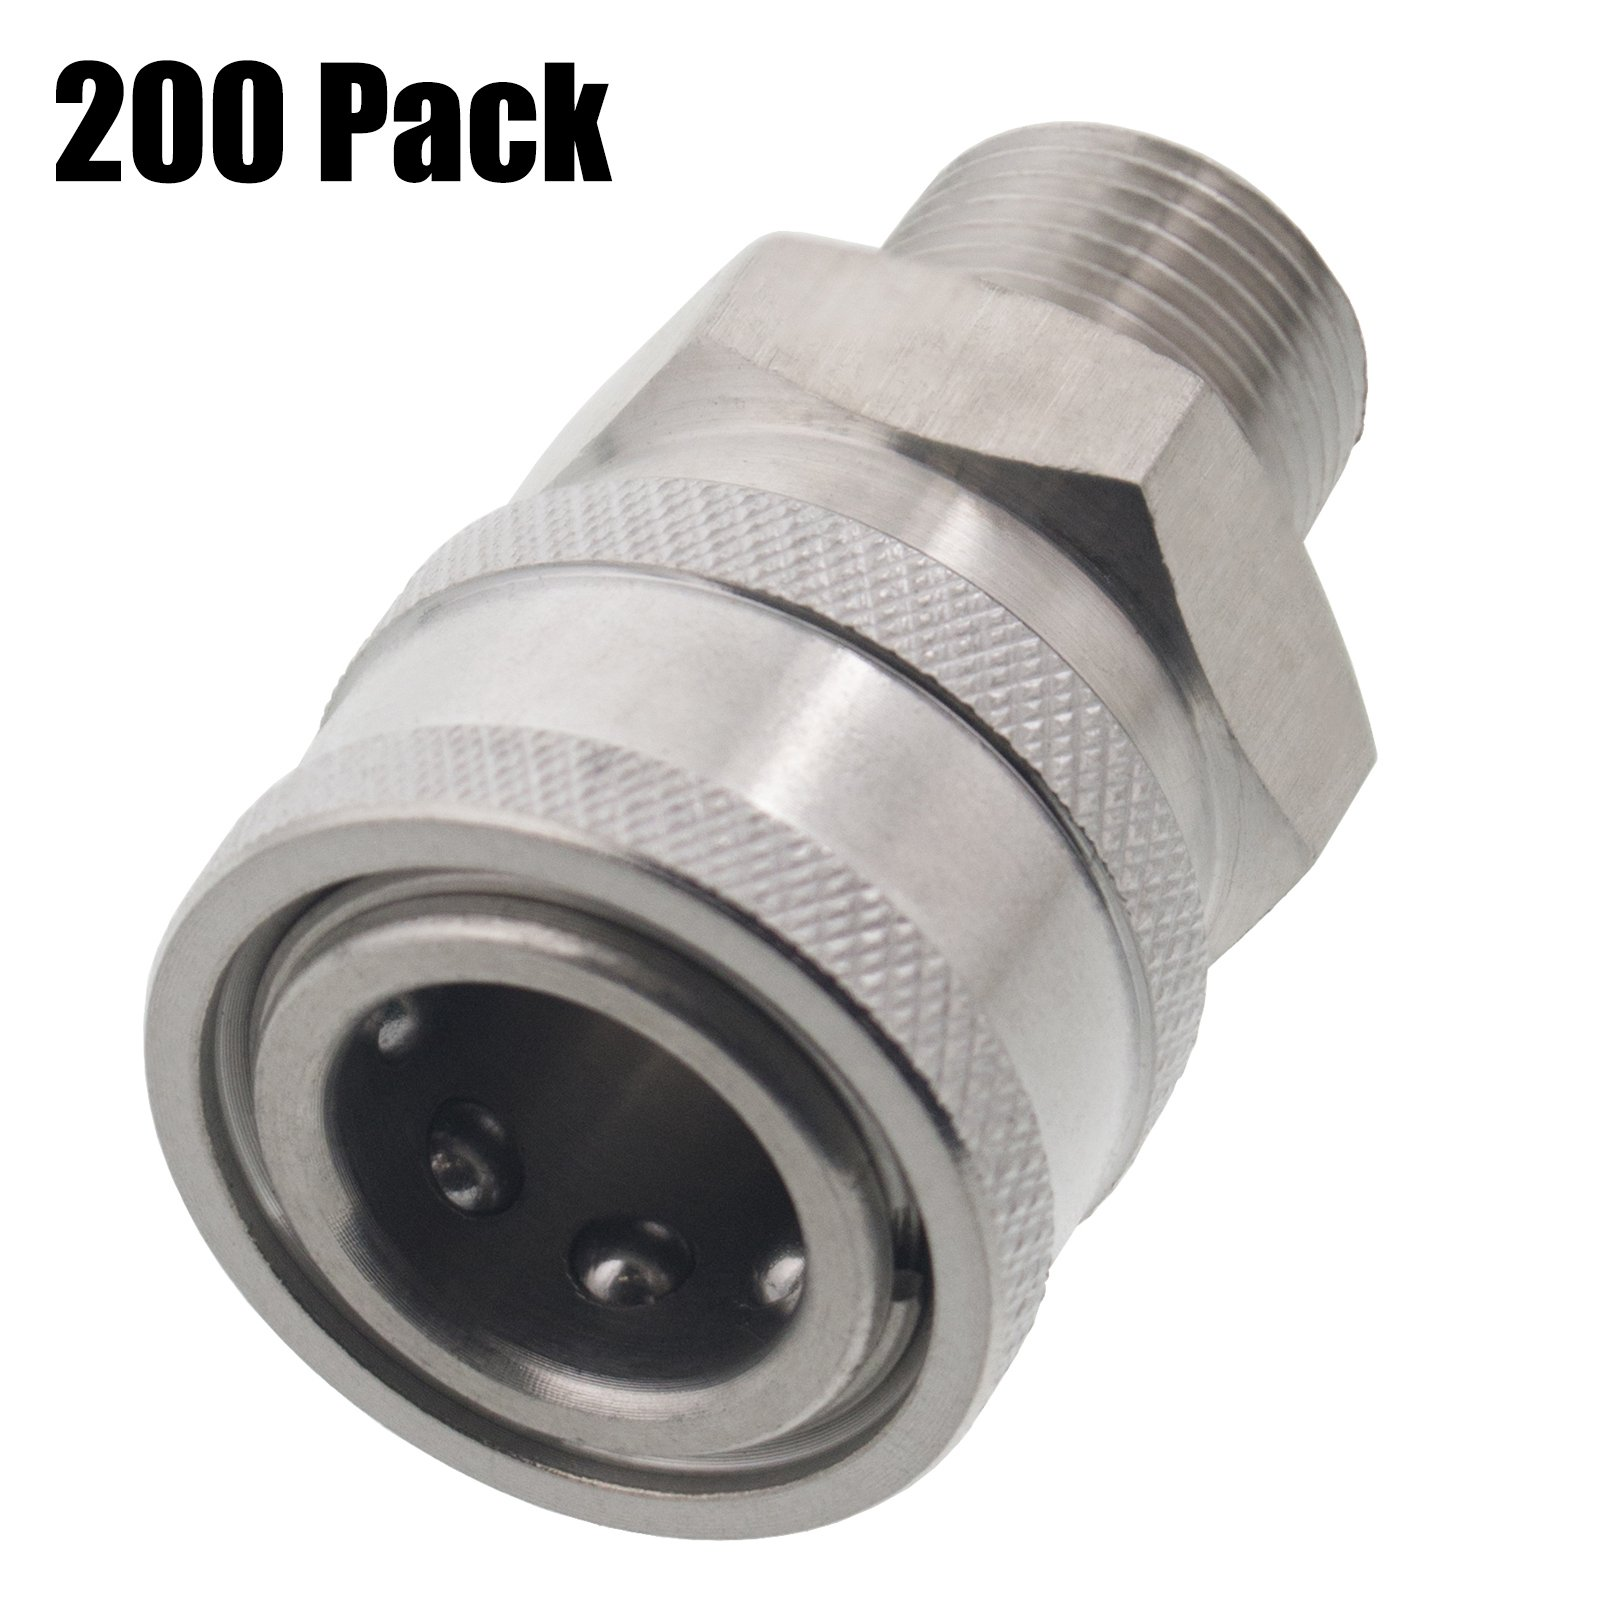 200 Pack of Erie Tools 3/8'' MPT Male Stainless Steel Socket Quick Connect Coupler 5000 PSI 10 GPM for Pressure Washer Nozzle Gun Hose Wand